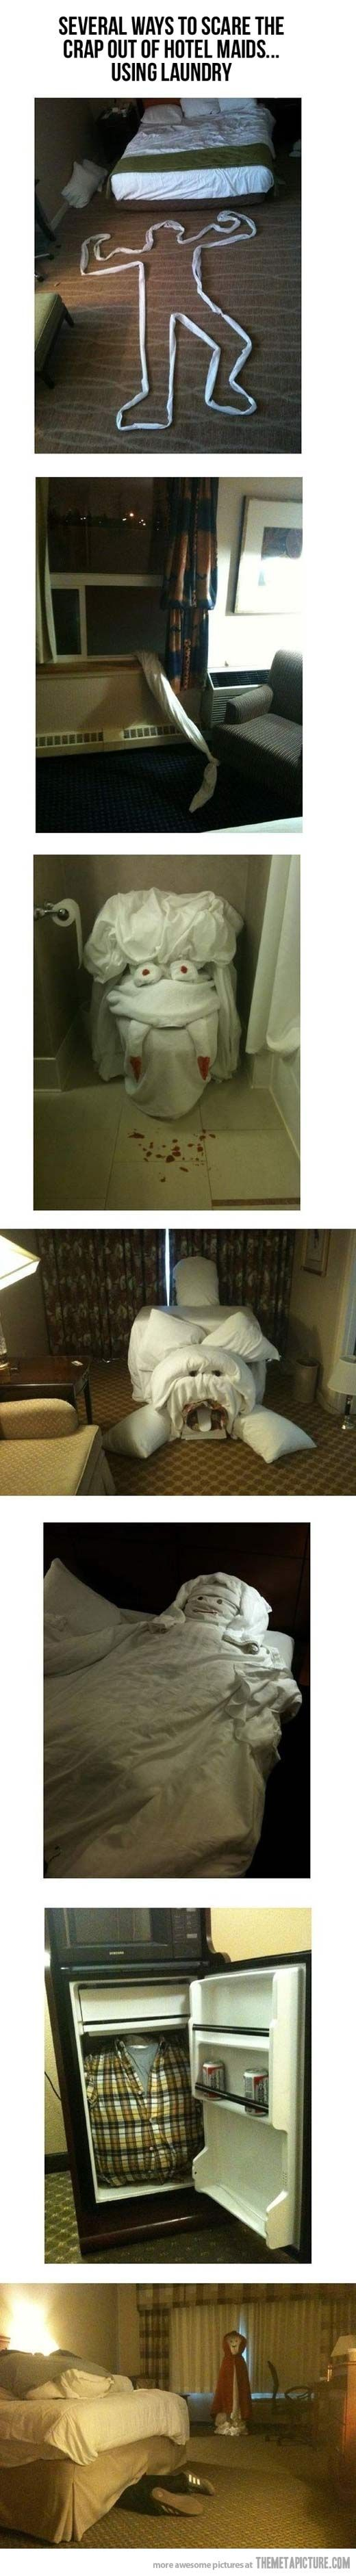 Before leaving your hotel room…bahaha